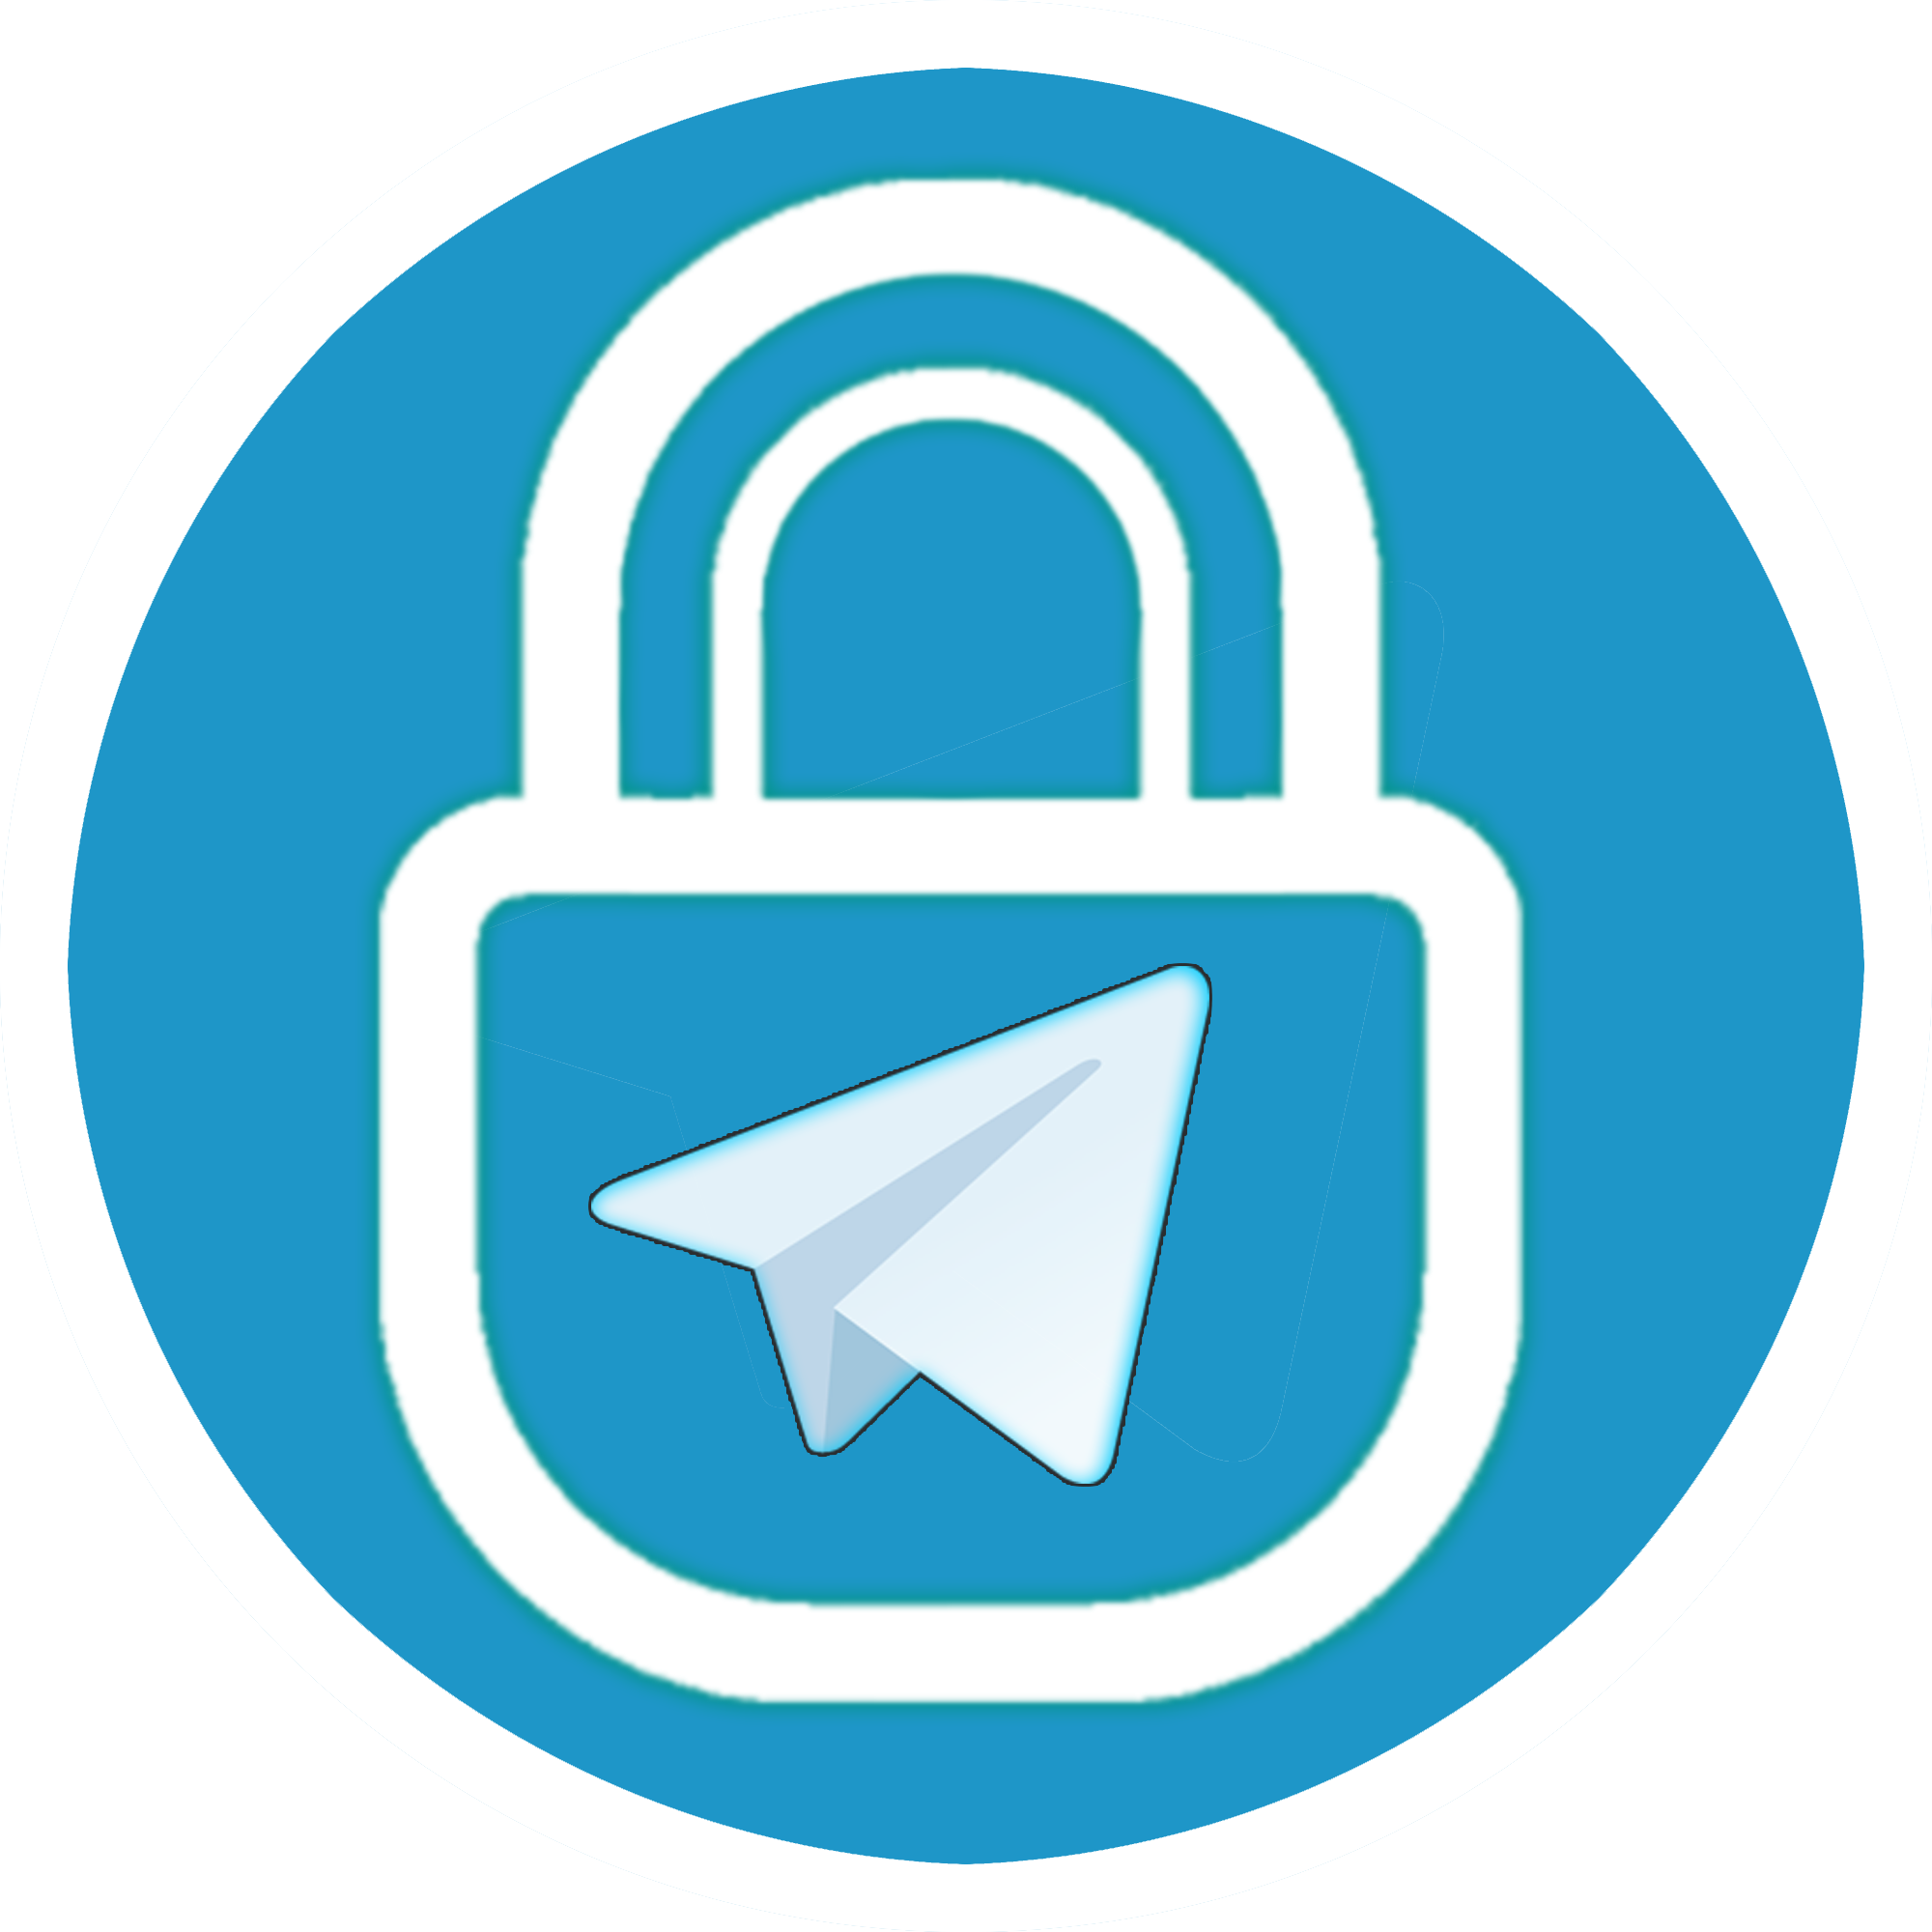 Is Telegram secure?